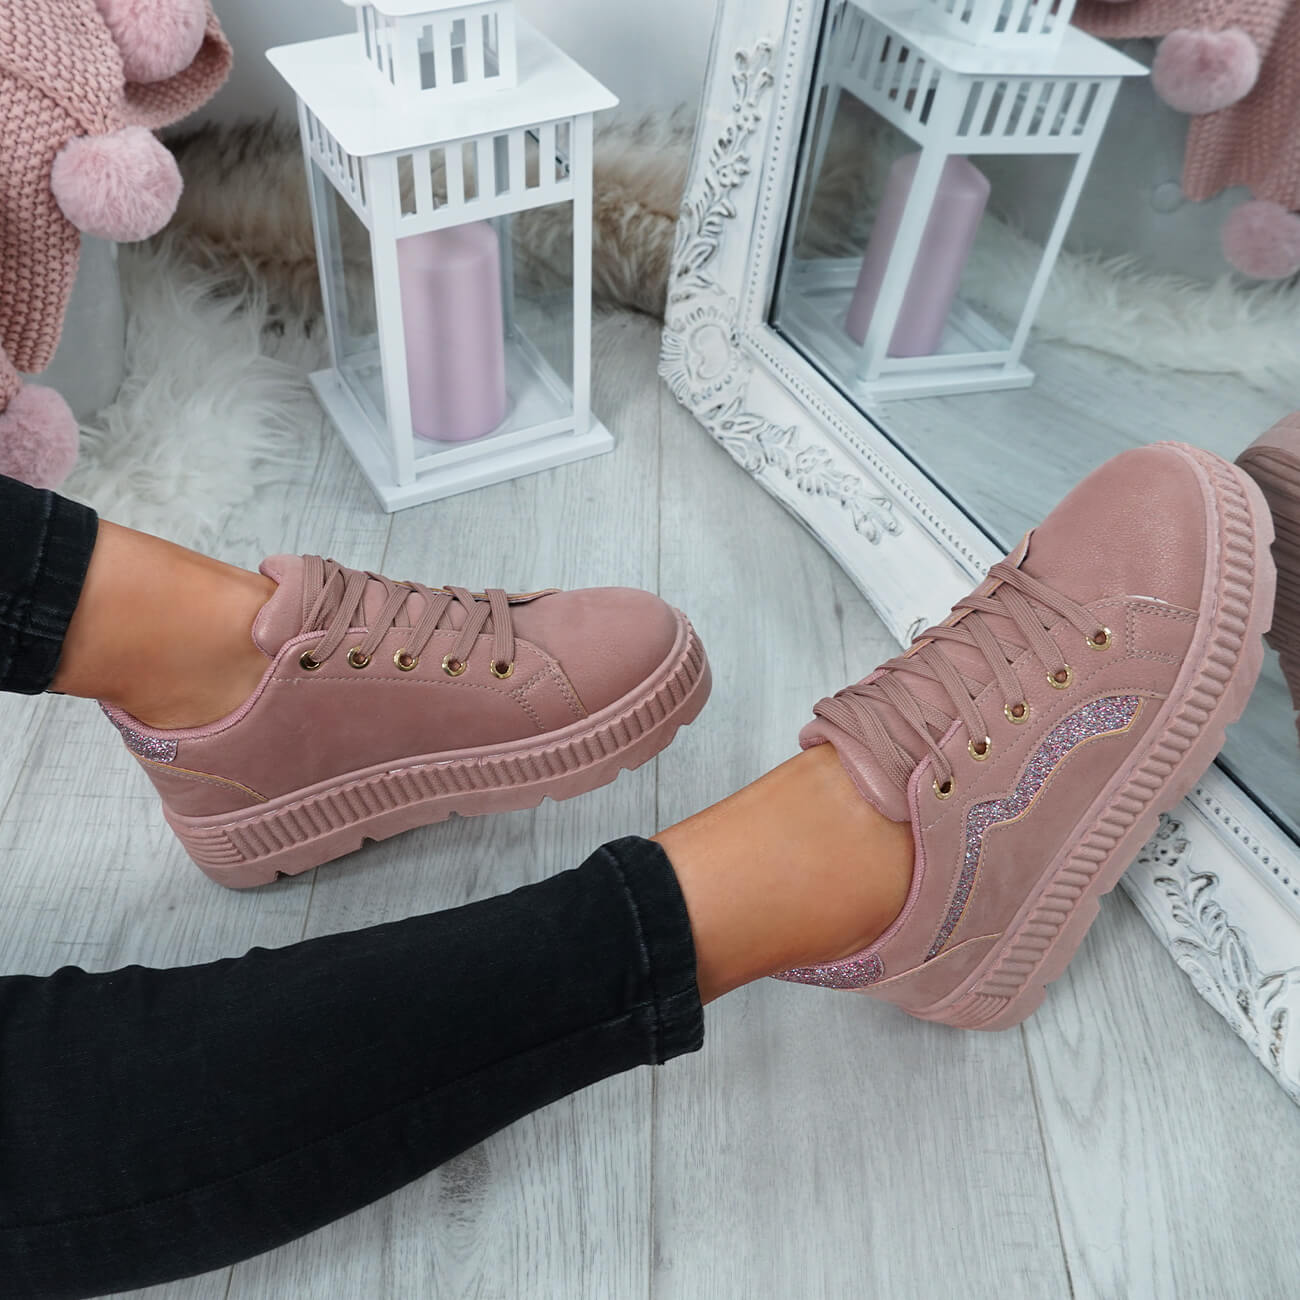 WOMENS-LADIES-LACE-UP-PLATFORM-TRAINERS-PLIMSOLL-SKATE-SNEAKERS-SHOES-SIZE thumbnail 24